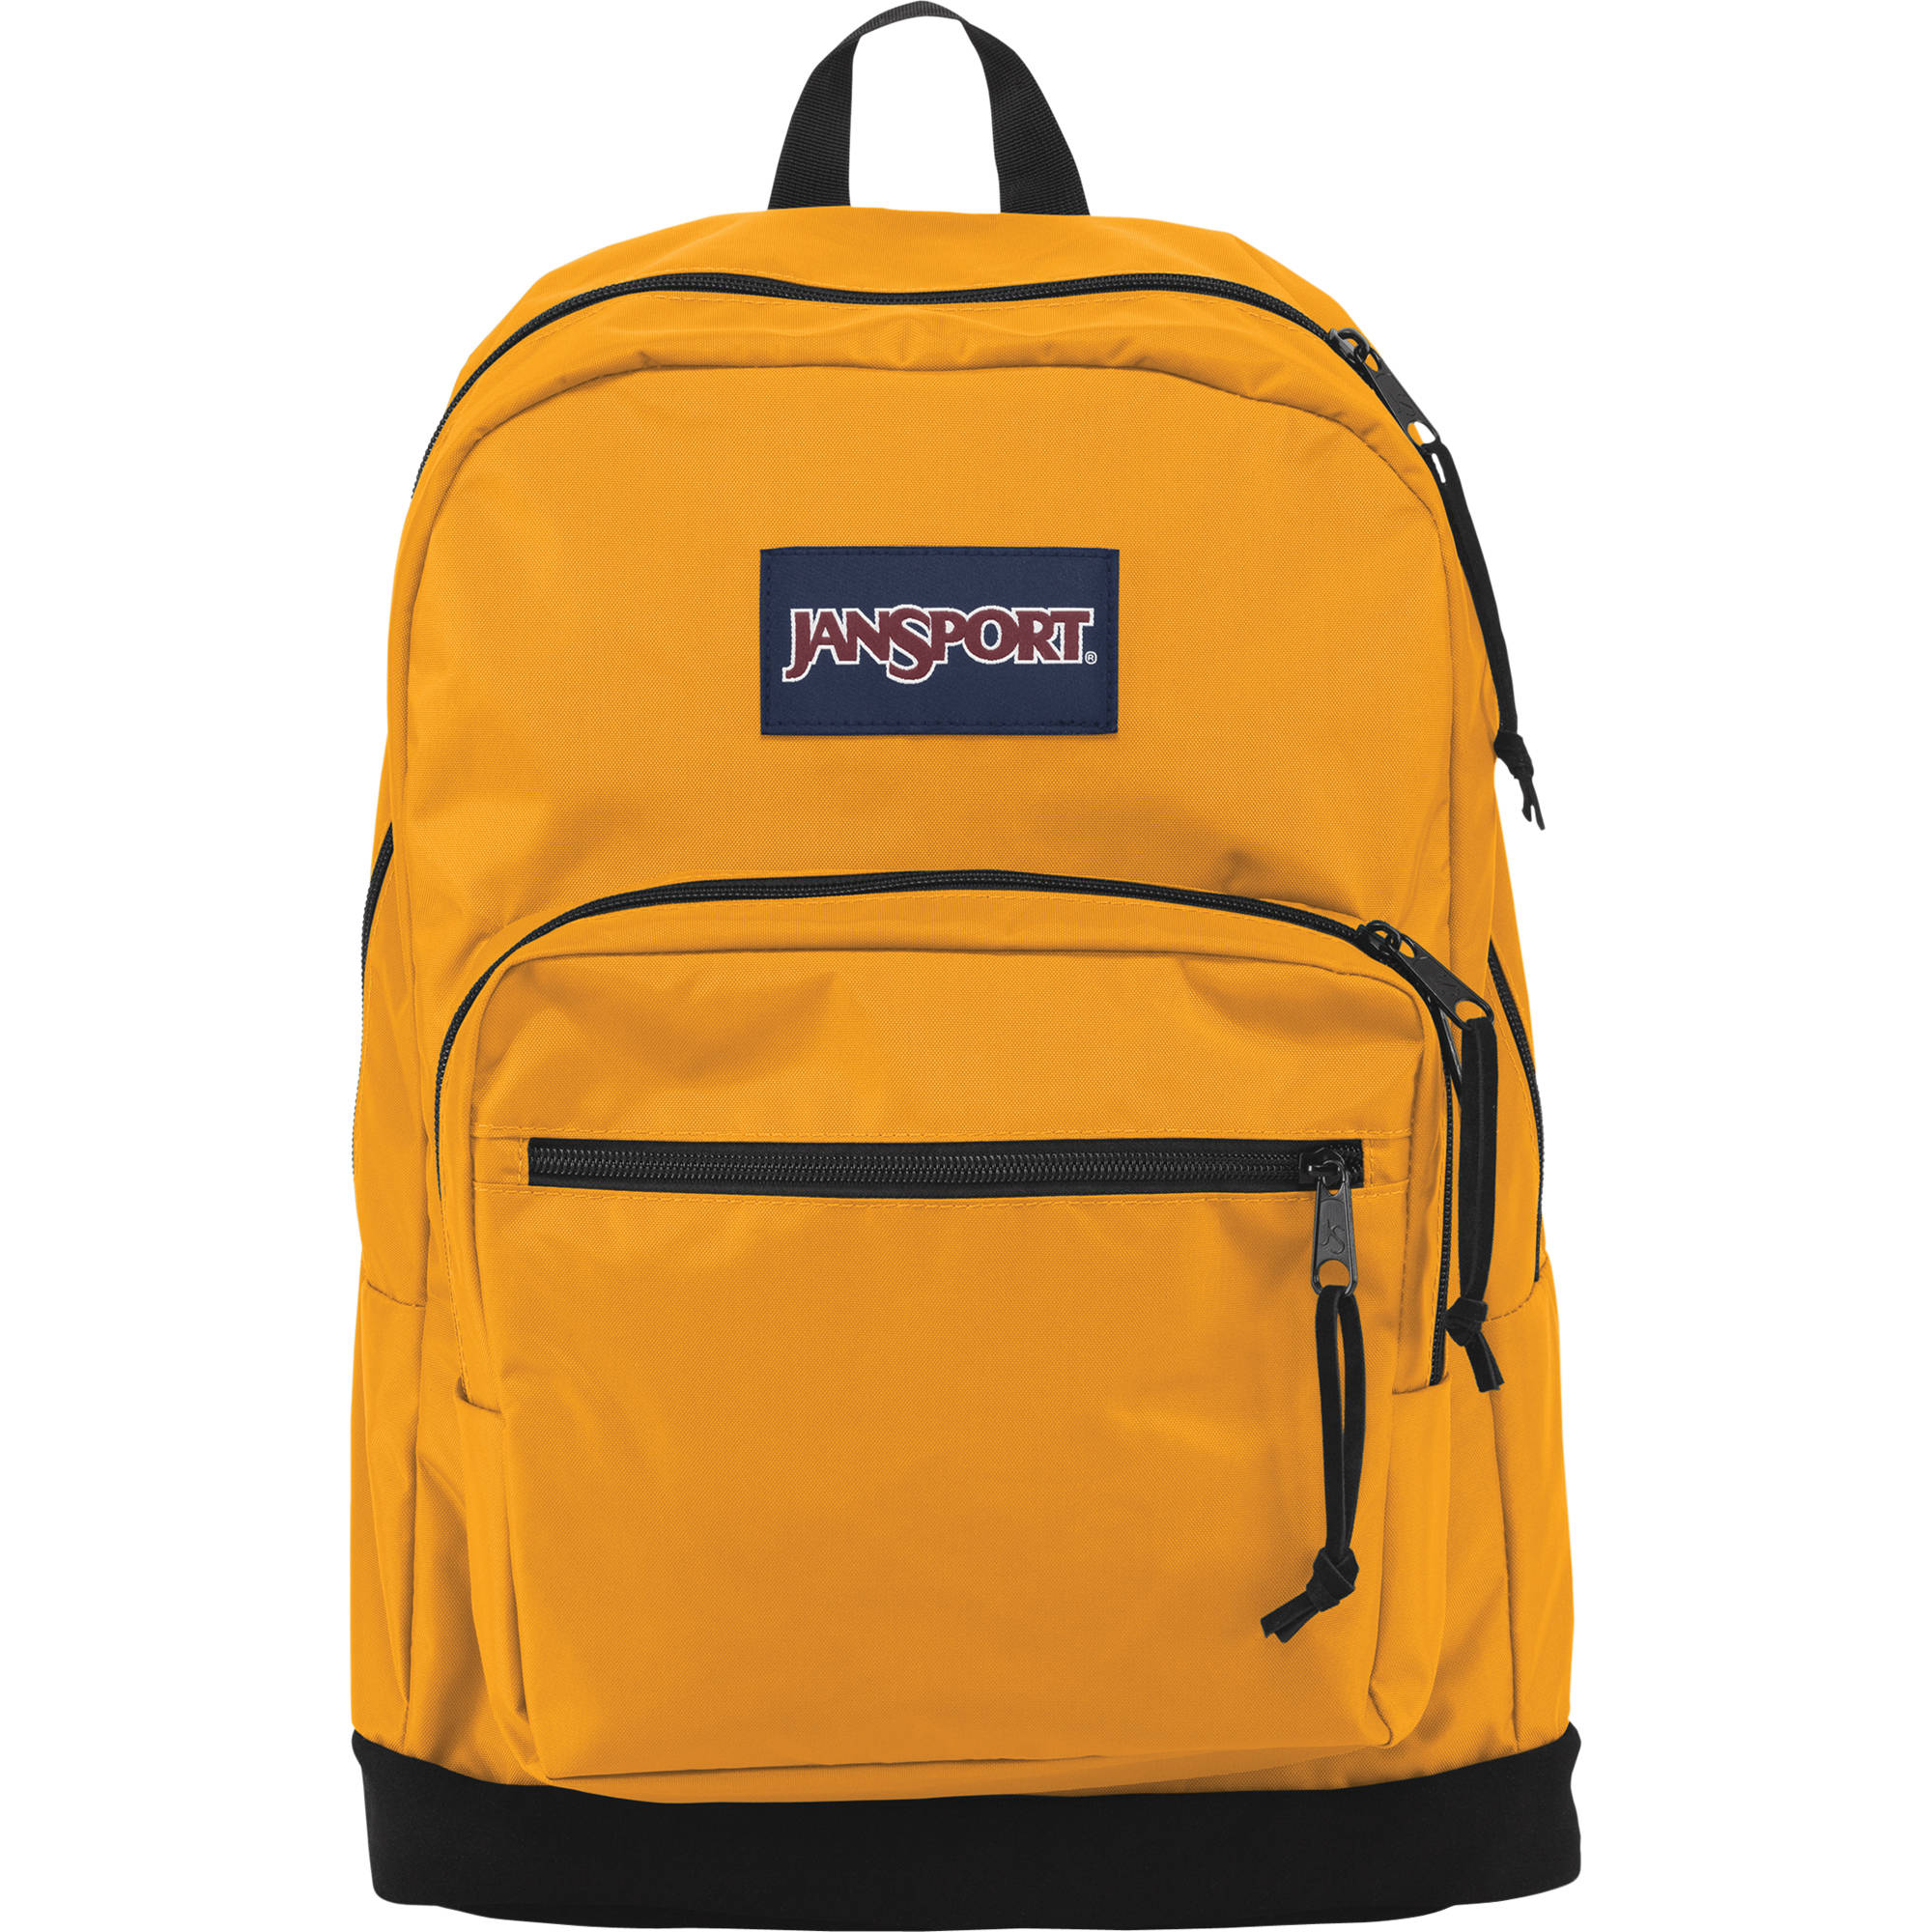 jansport right pack backpack review